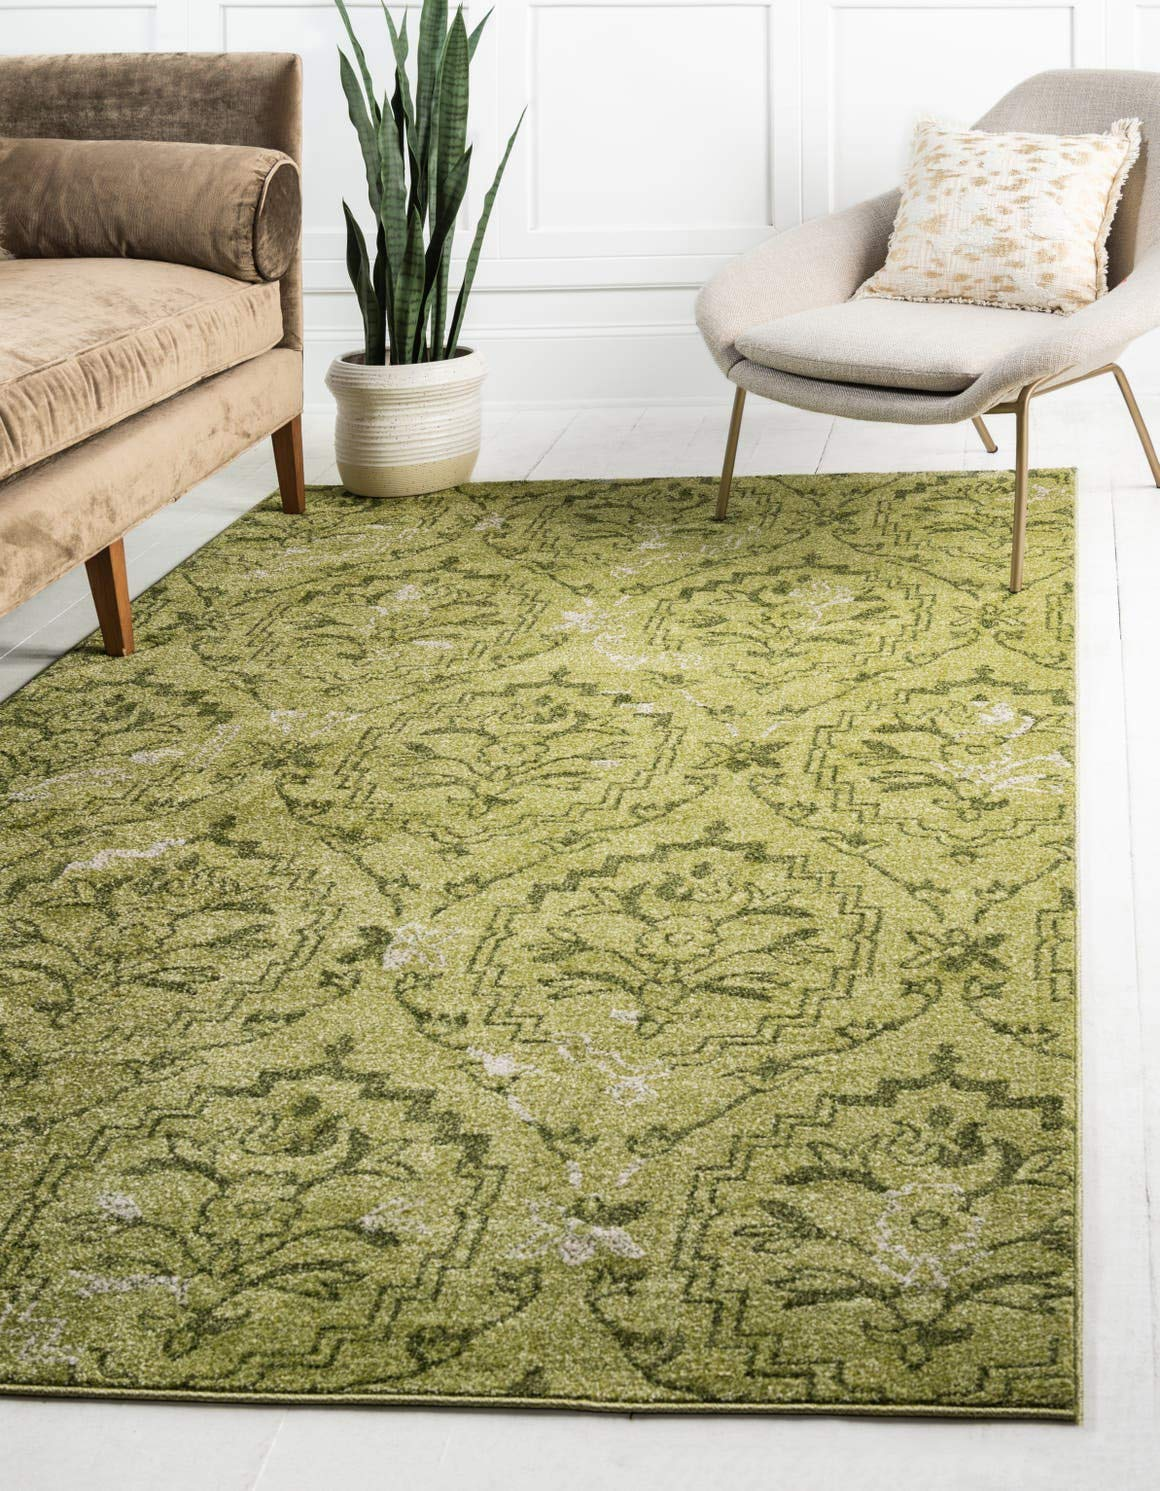 Unique Loom Damask Collection Traditional Floral Light Green Area Rug 5 0 x 8 0